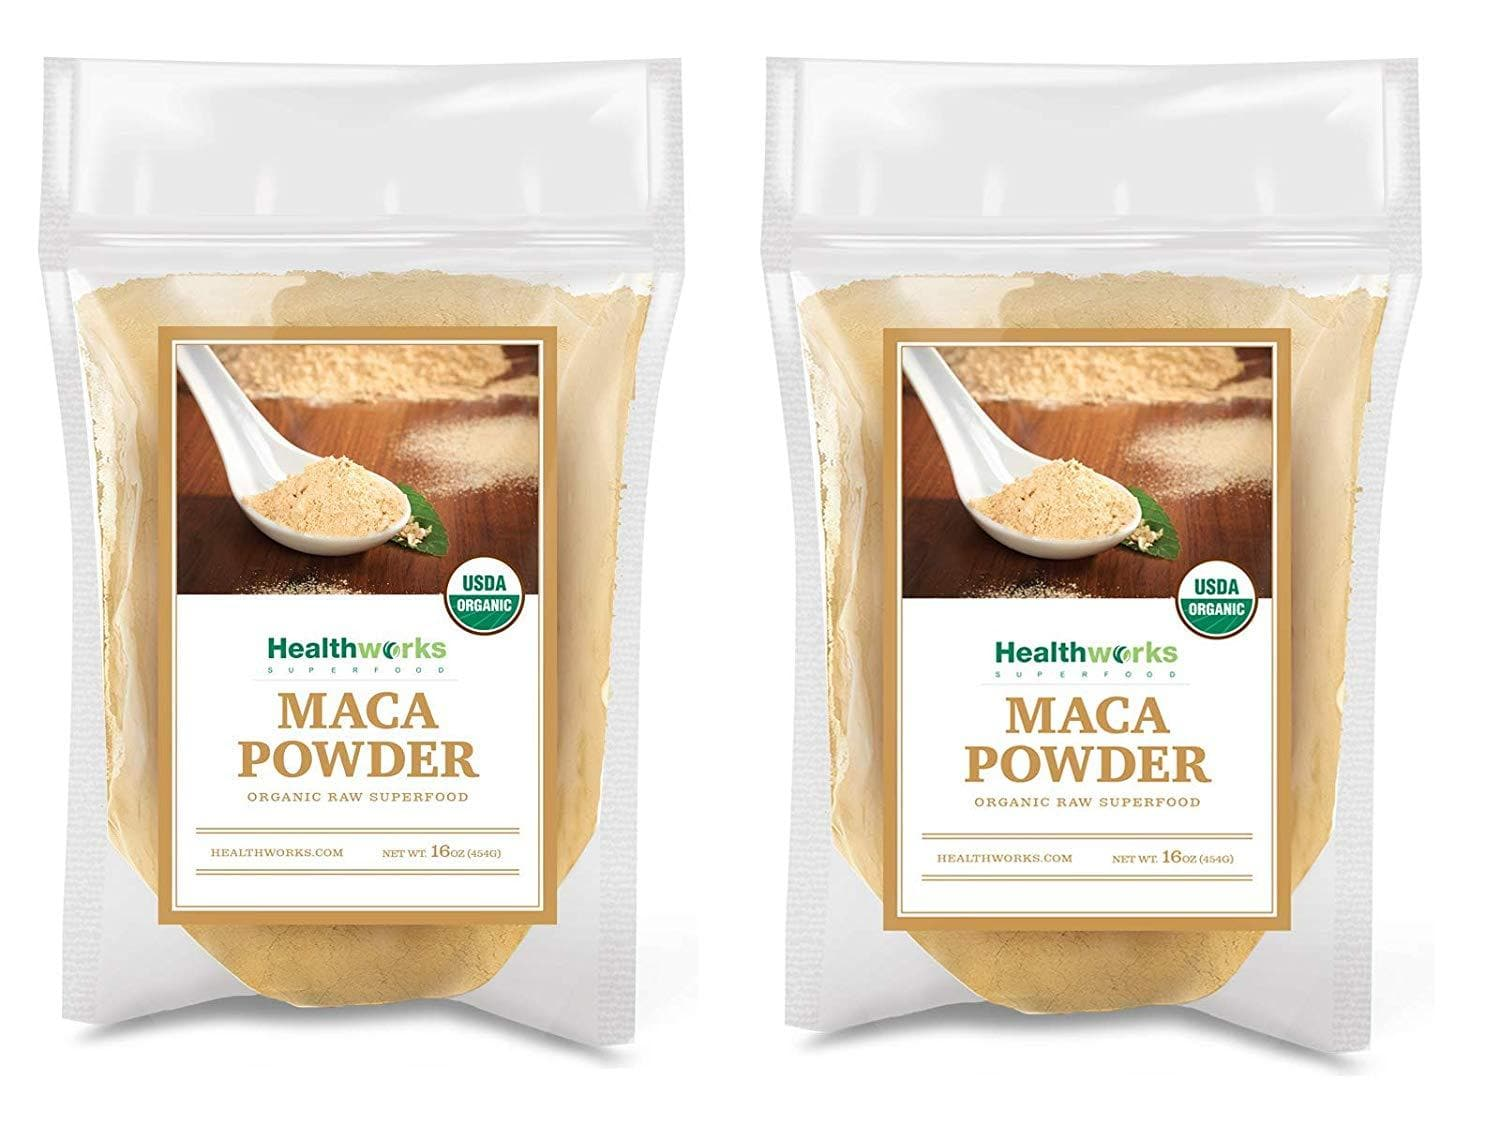 Healthworks Maca Powder Raw Organic, 2lb (2 1lb bag) - Healthworks Superfood Organic